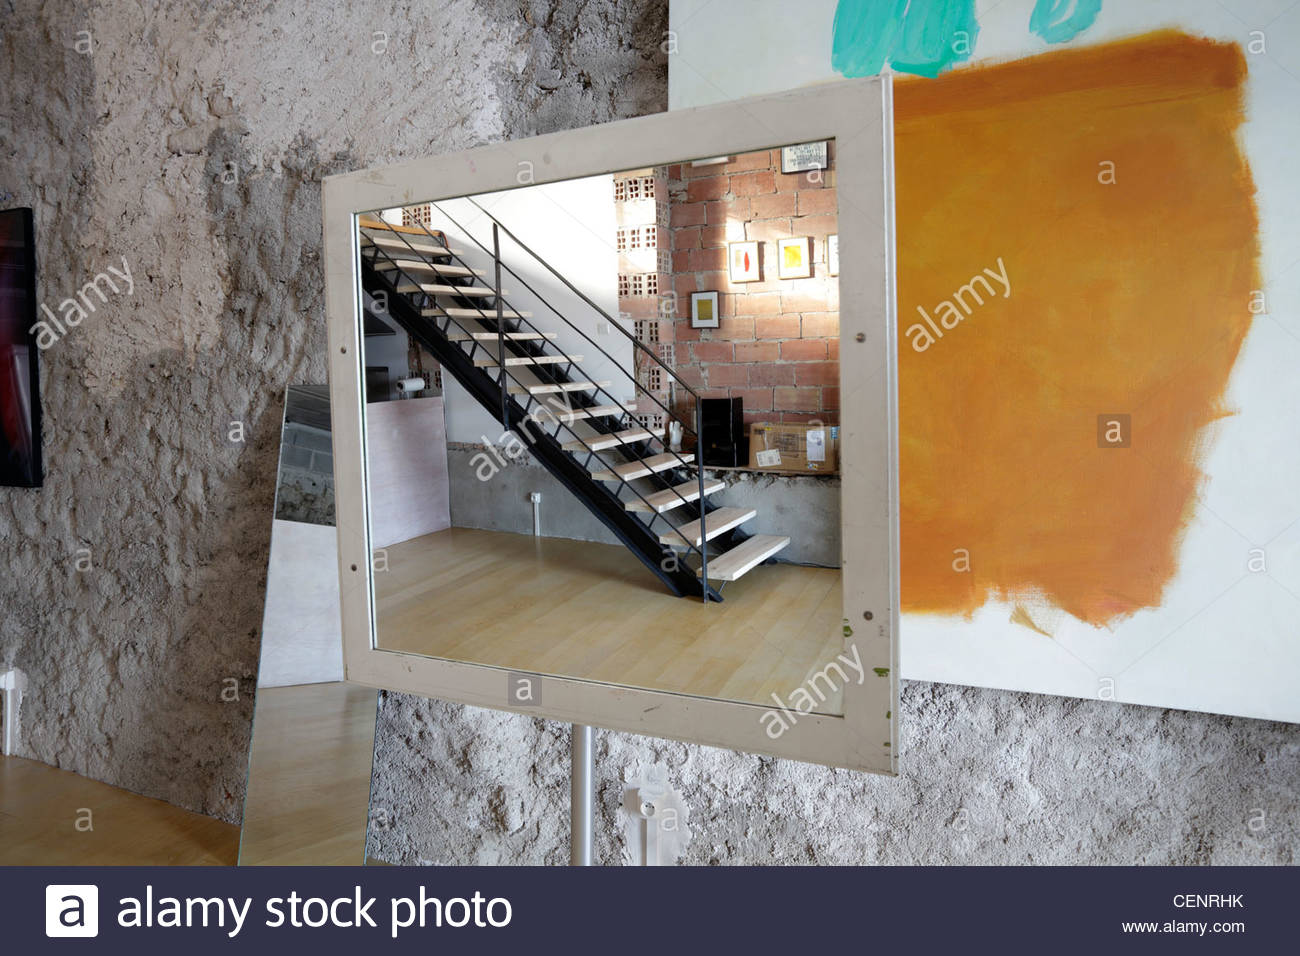 mirror placed in a room with artworks in the walls - Stock Image